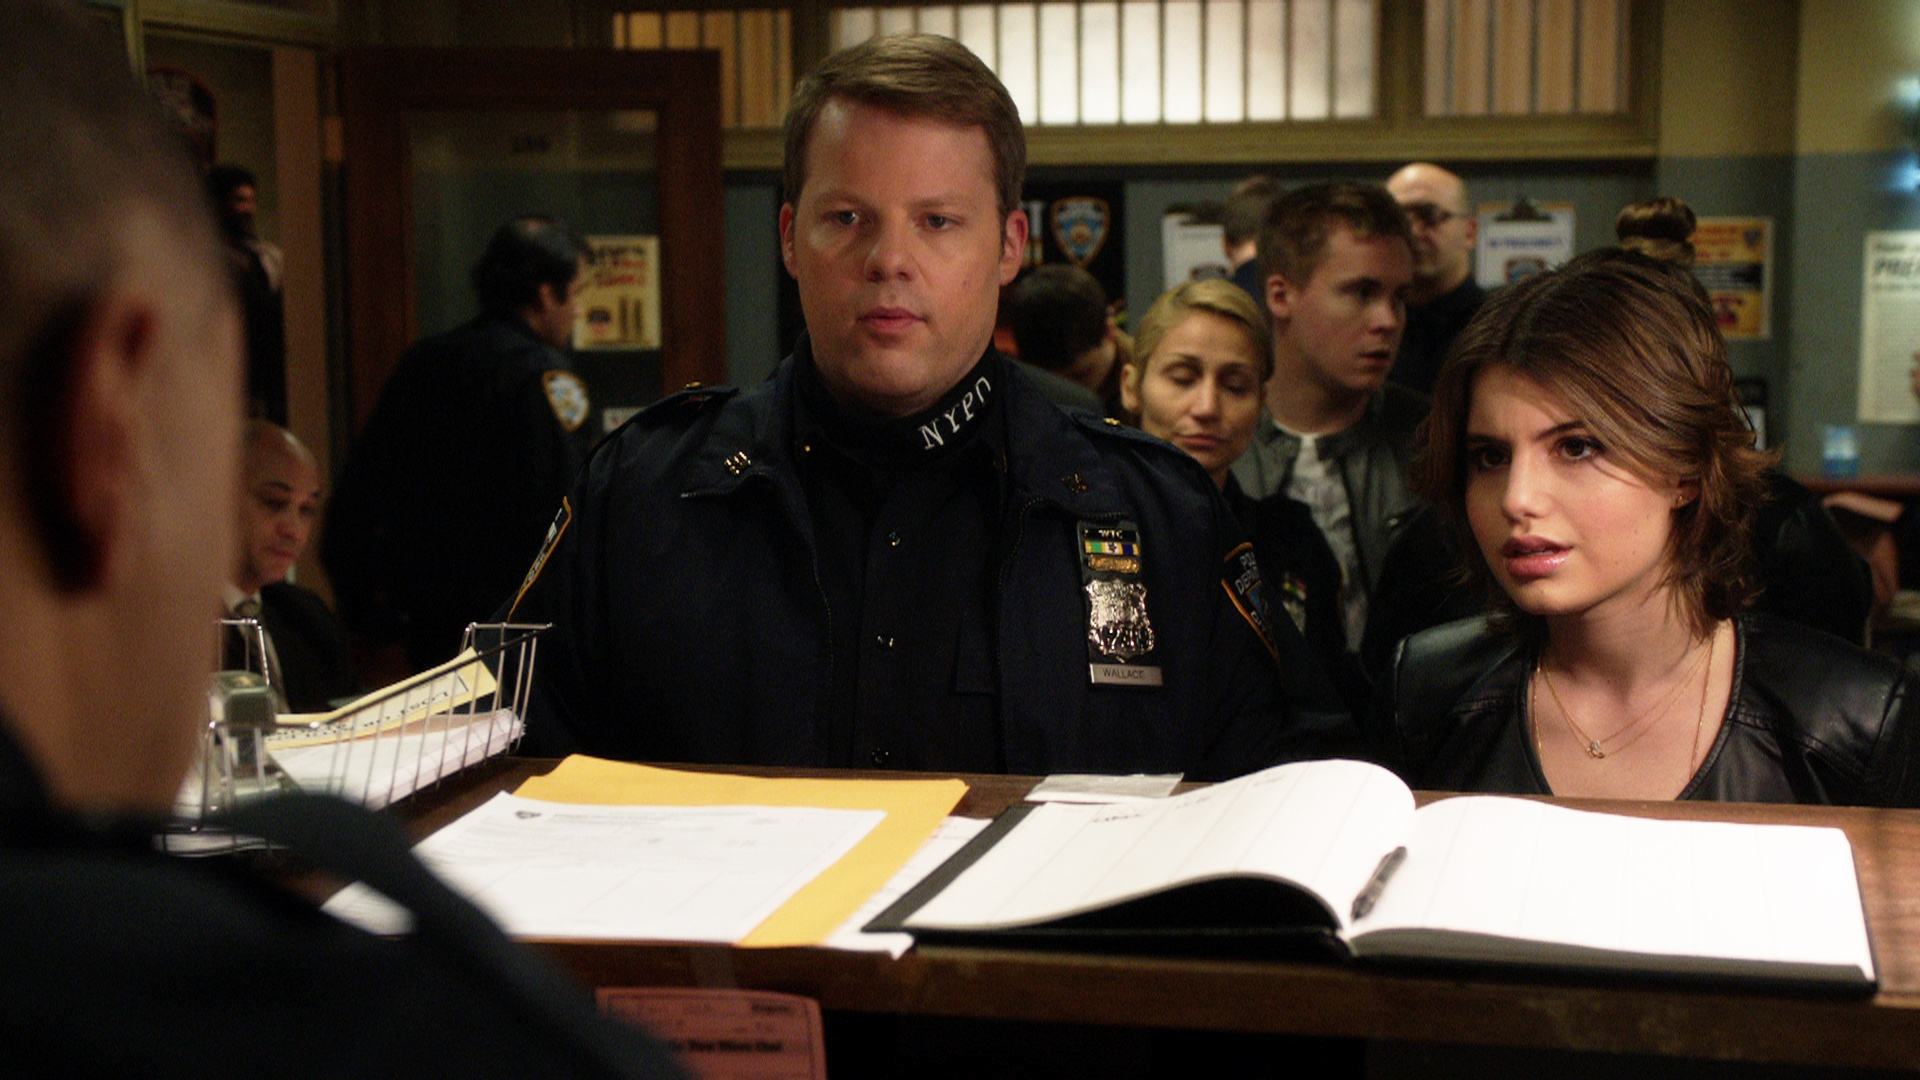 Sami Gayle as Nicky stands next to a police officer in a police station on Blue Bloods